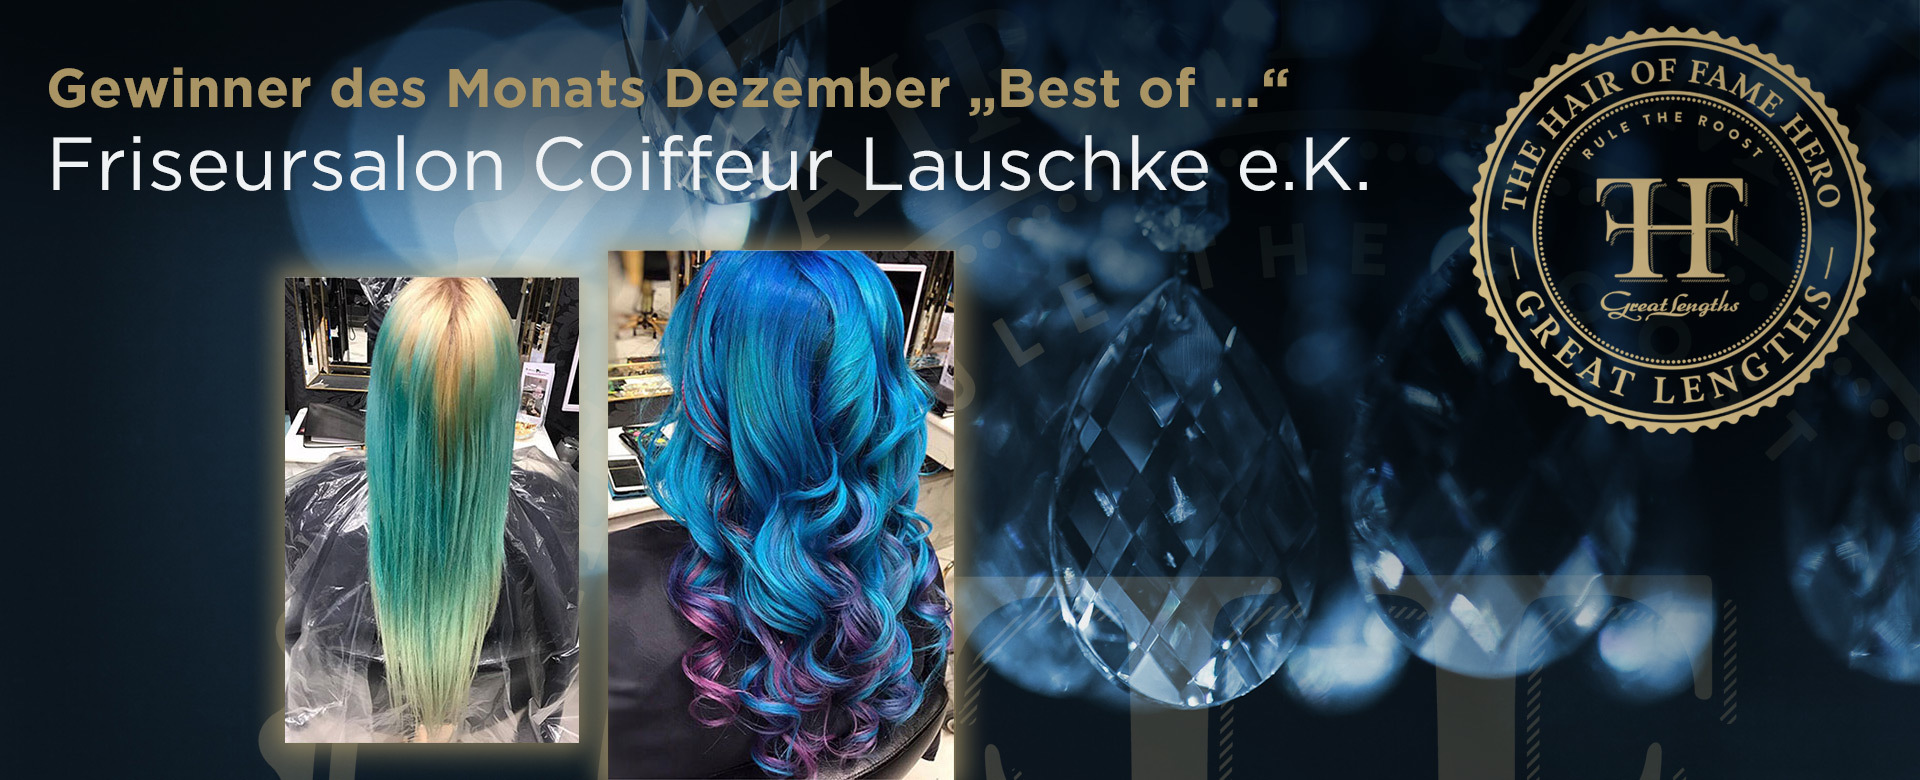 Hair-of-Fame Hero Monat Dezember 2018 (© Great Lengths)